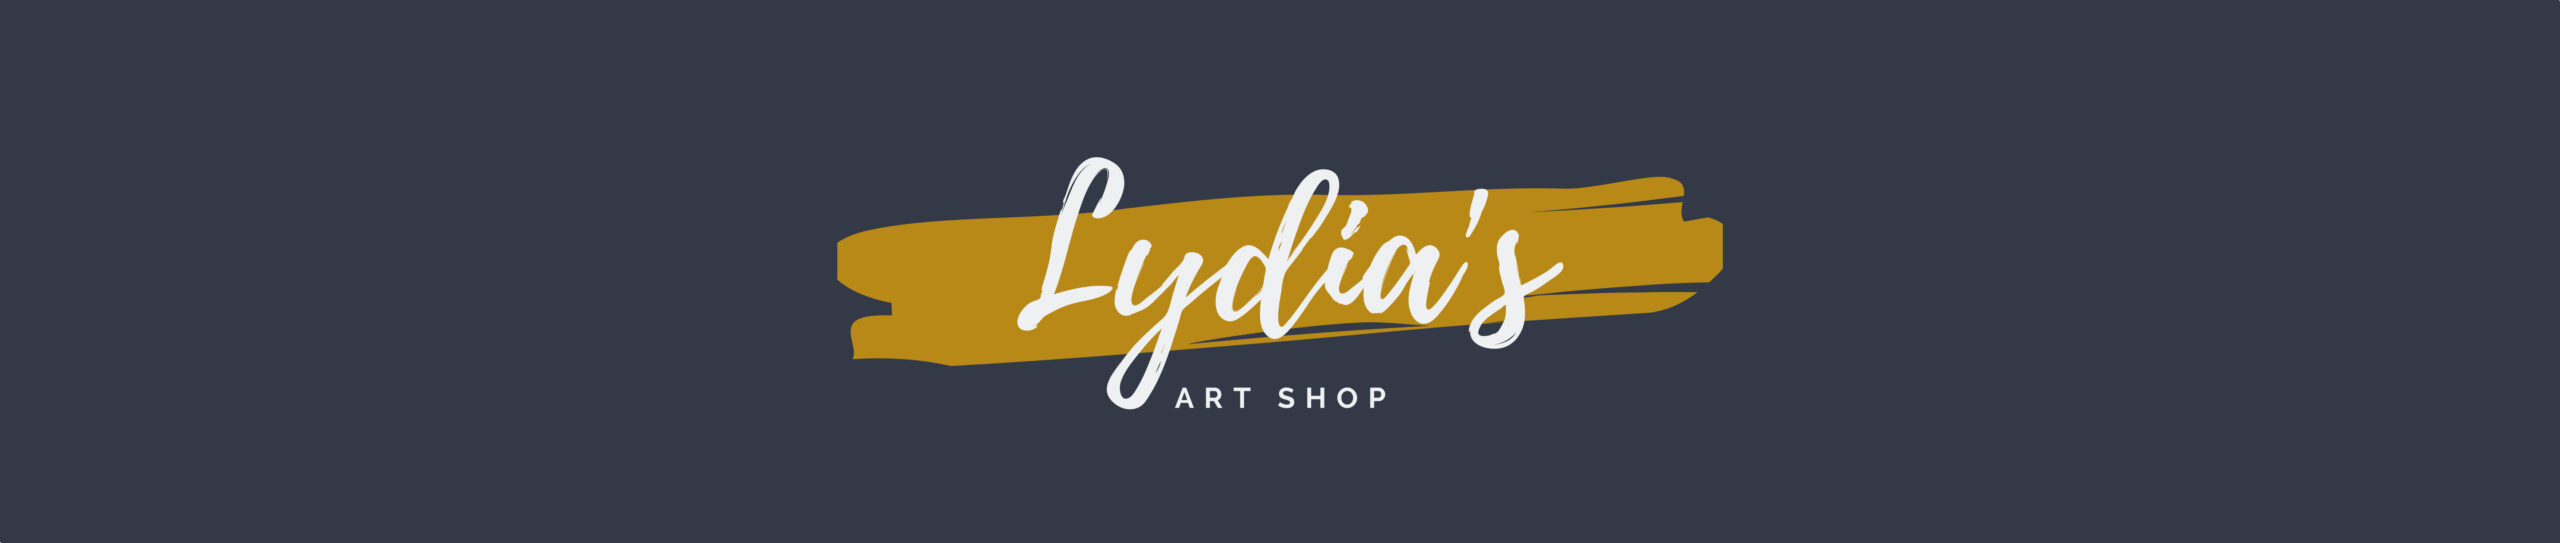 Lydias Art Shop